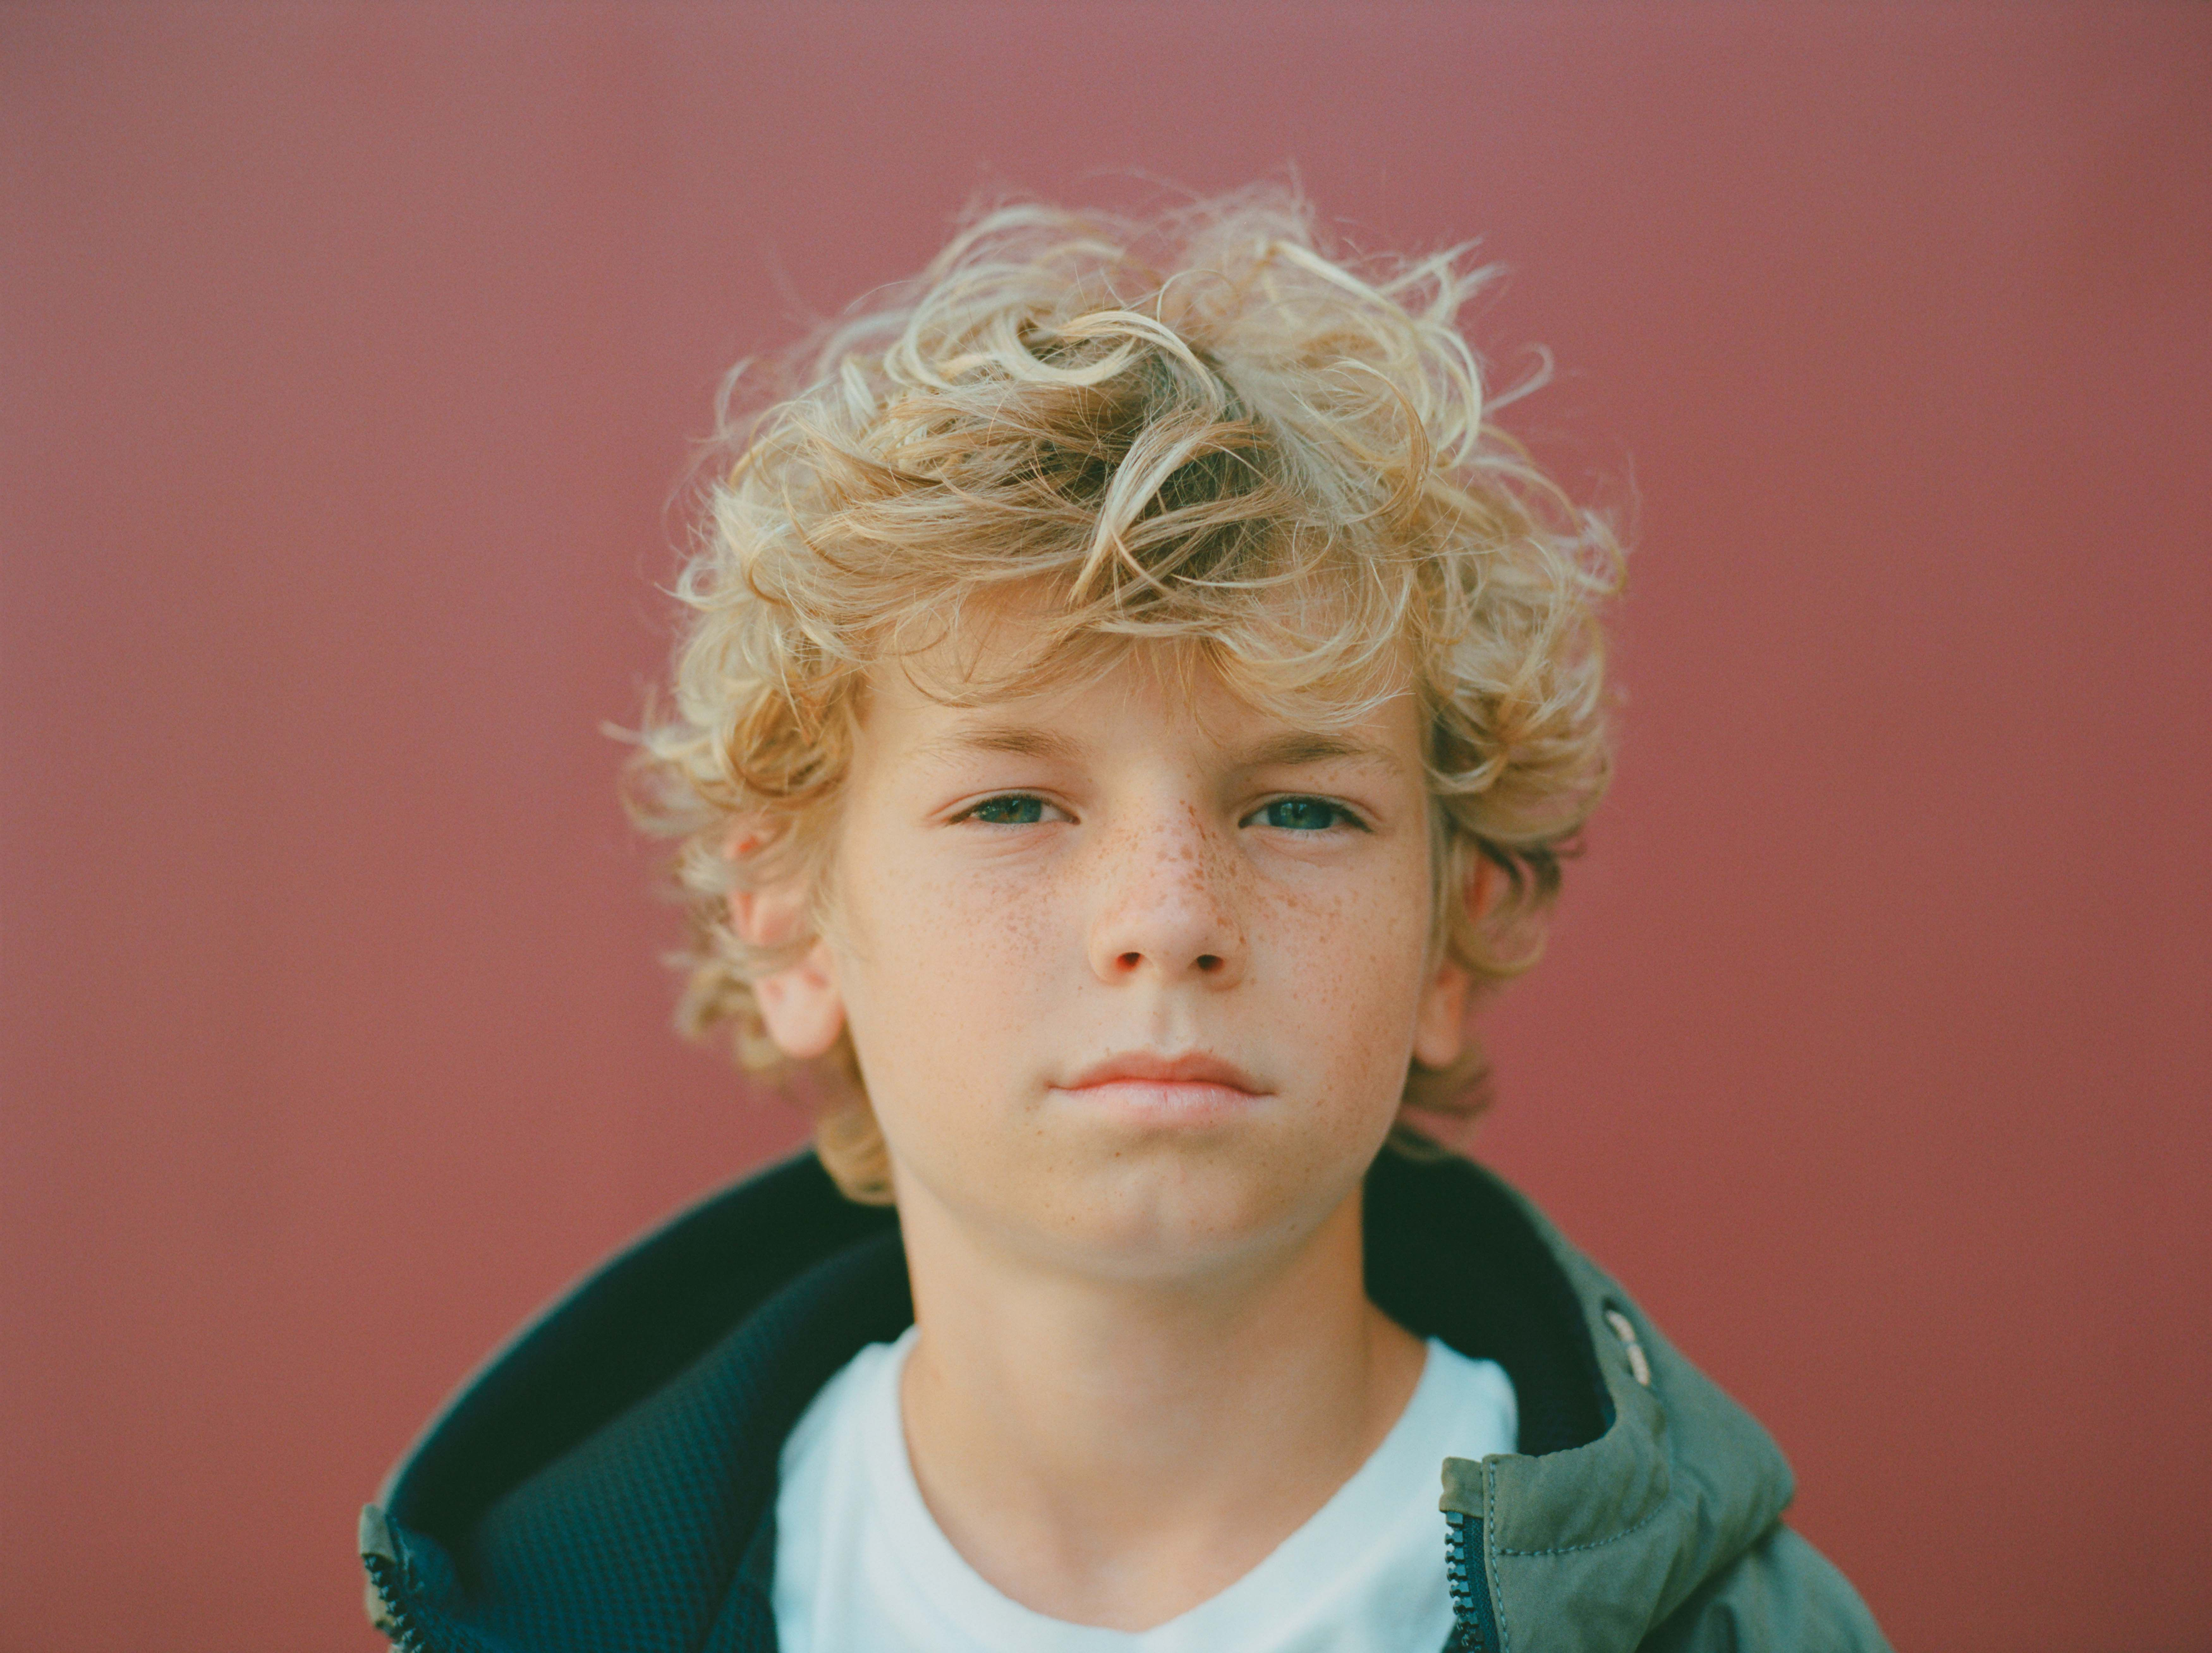 Boy hairstyle latest pin by dany stevens on kids  pinterest